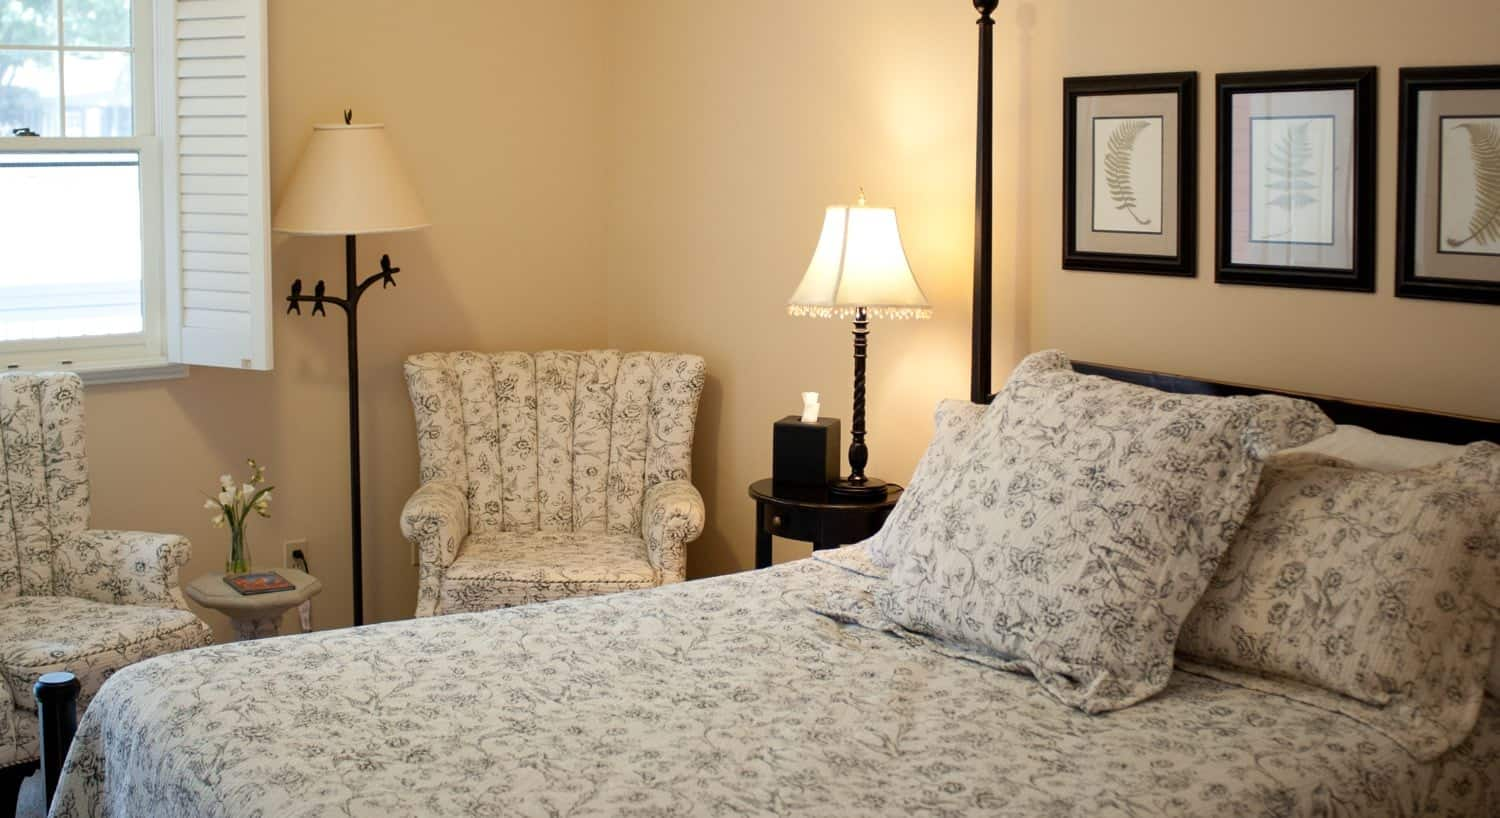 Dark wood four-post bed with floral bedding and chairs to match